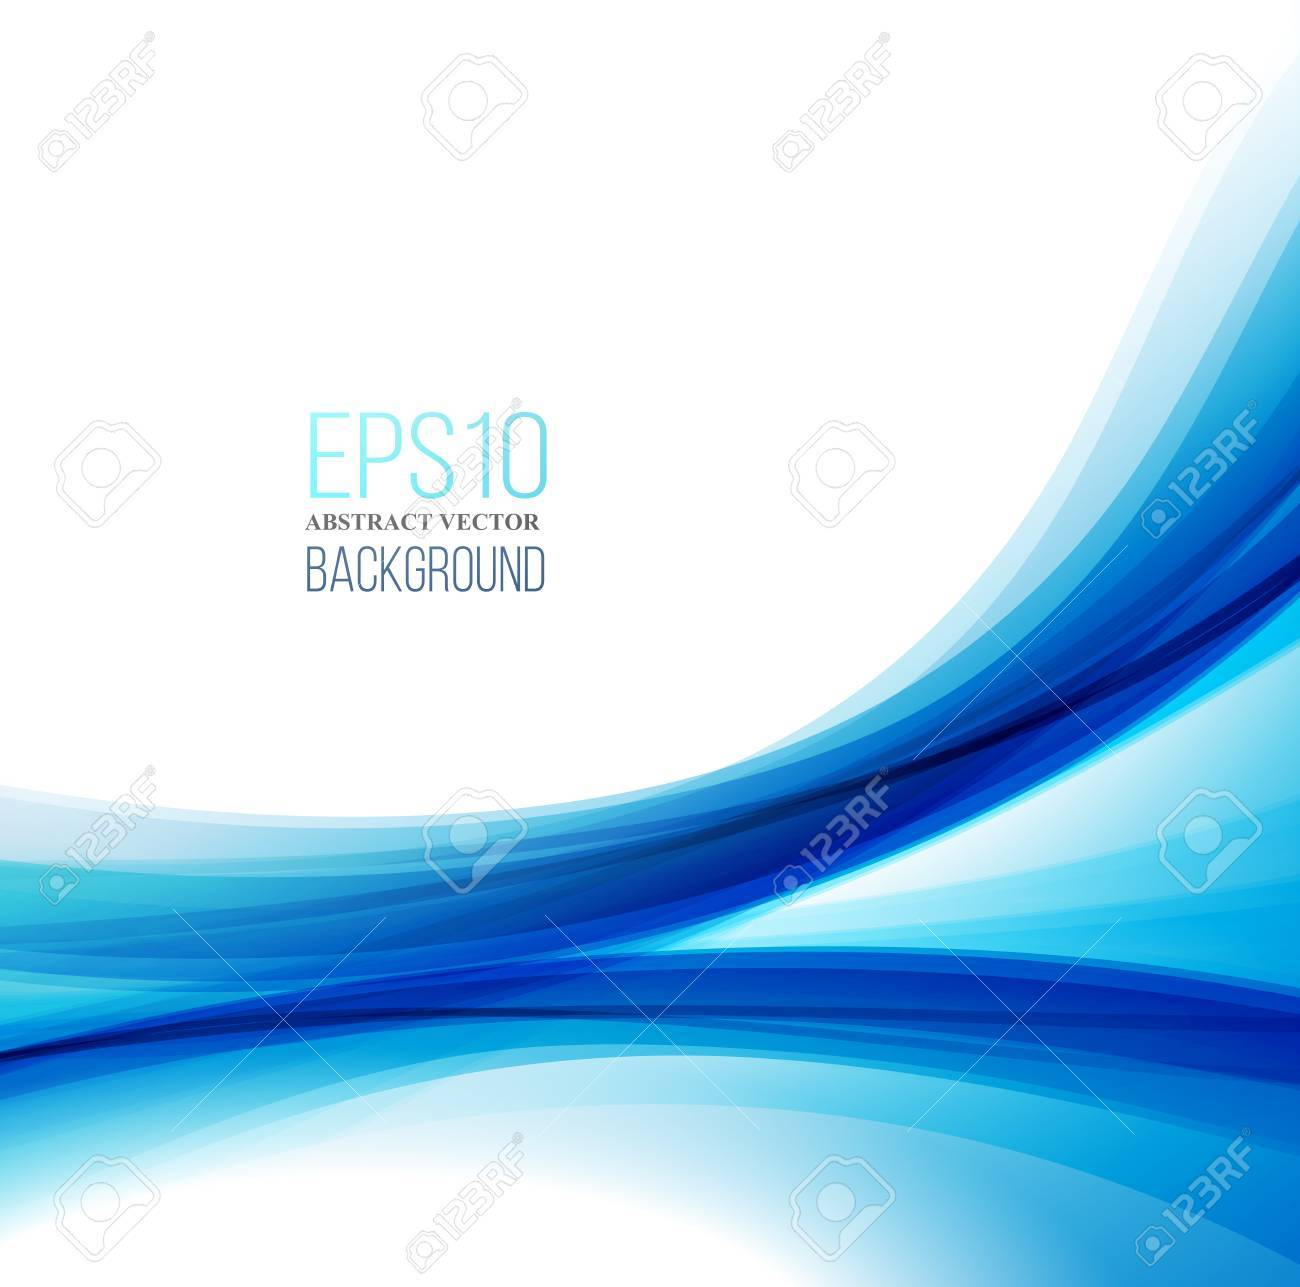 Abstract Modern Blue, Black And White Background - 48129974